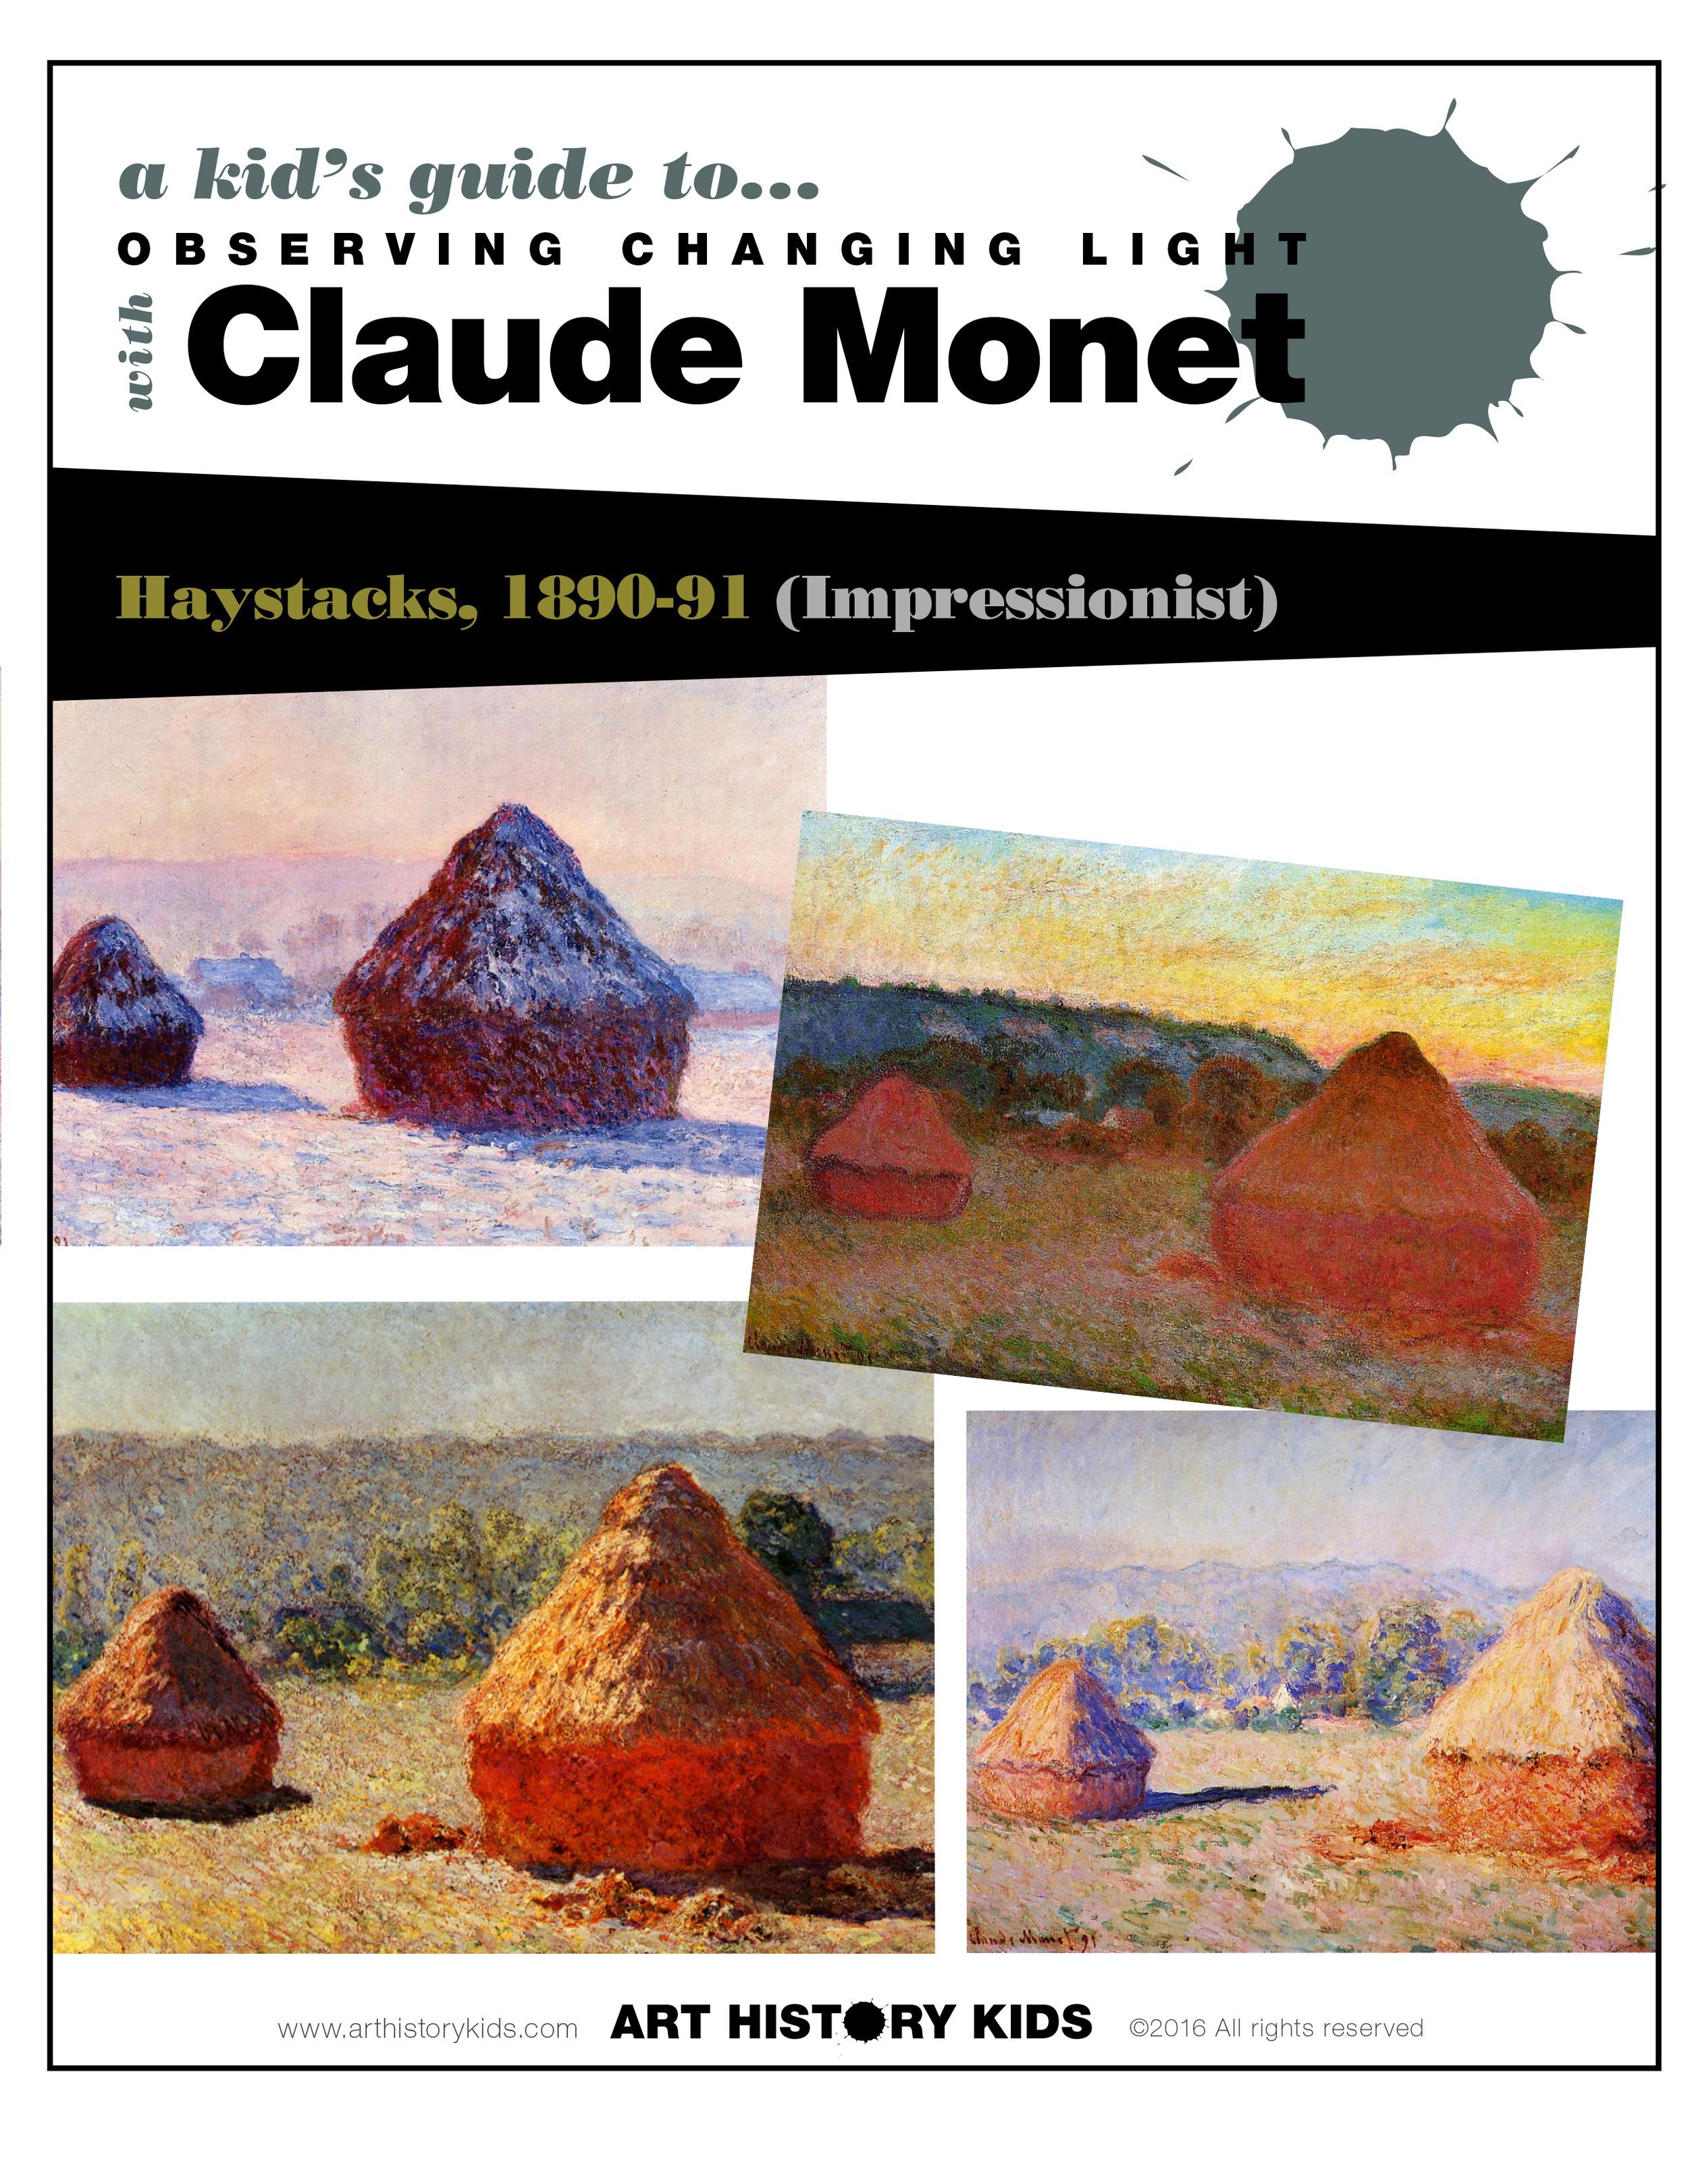 Introduce your kids to Impressionist art and Monet's Haystacks. Explore Art History at home with your kids through fun hands on projects, games, and book recommendations.